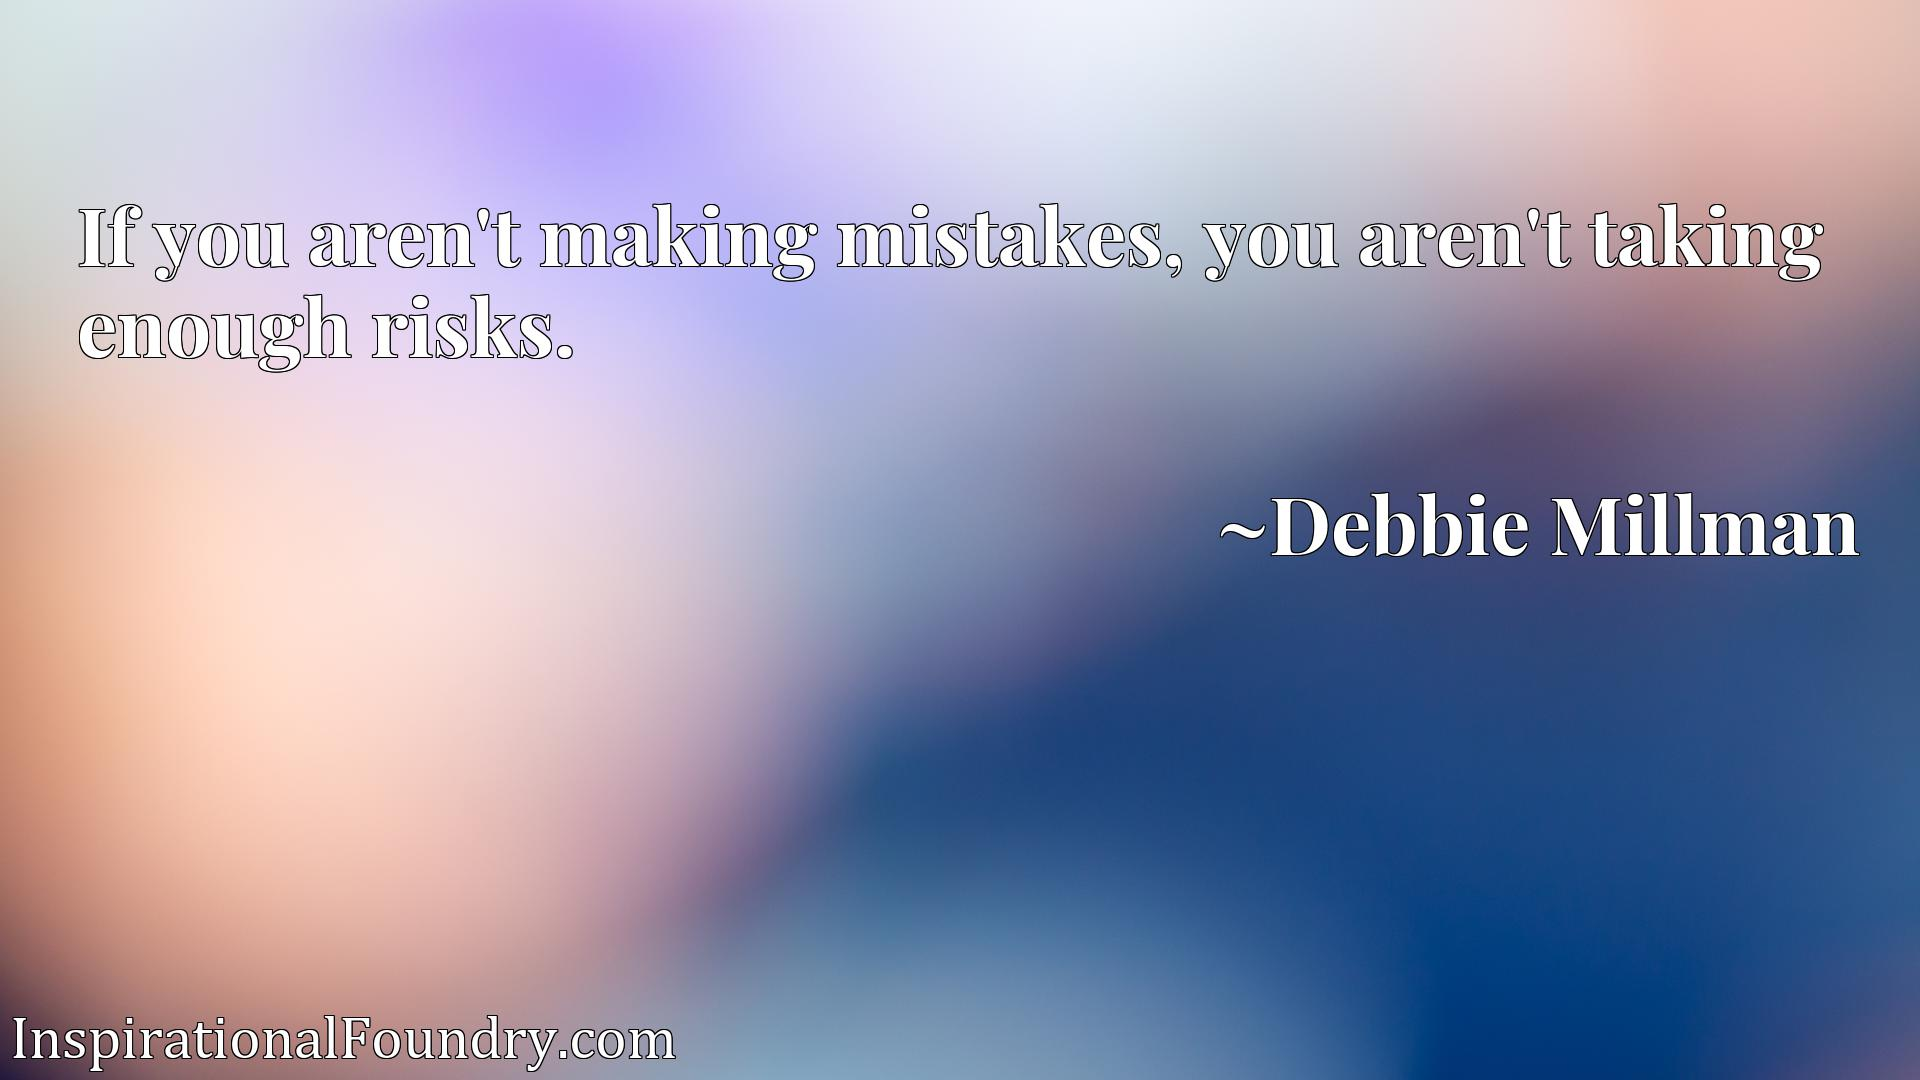 If you aren't making mistakes, you aren't taking enough risks.